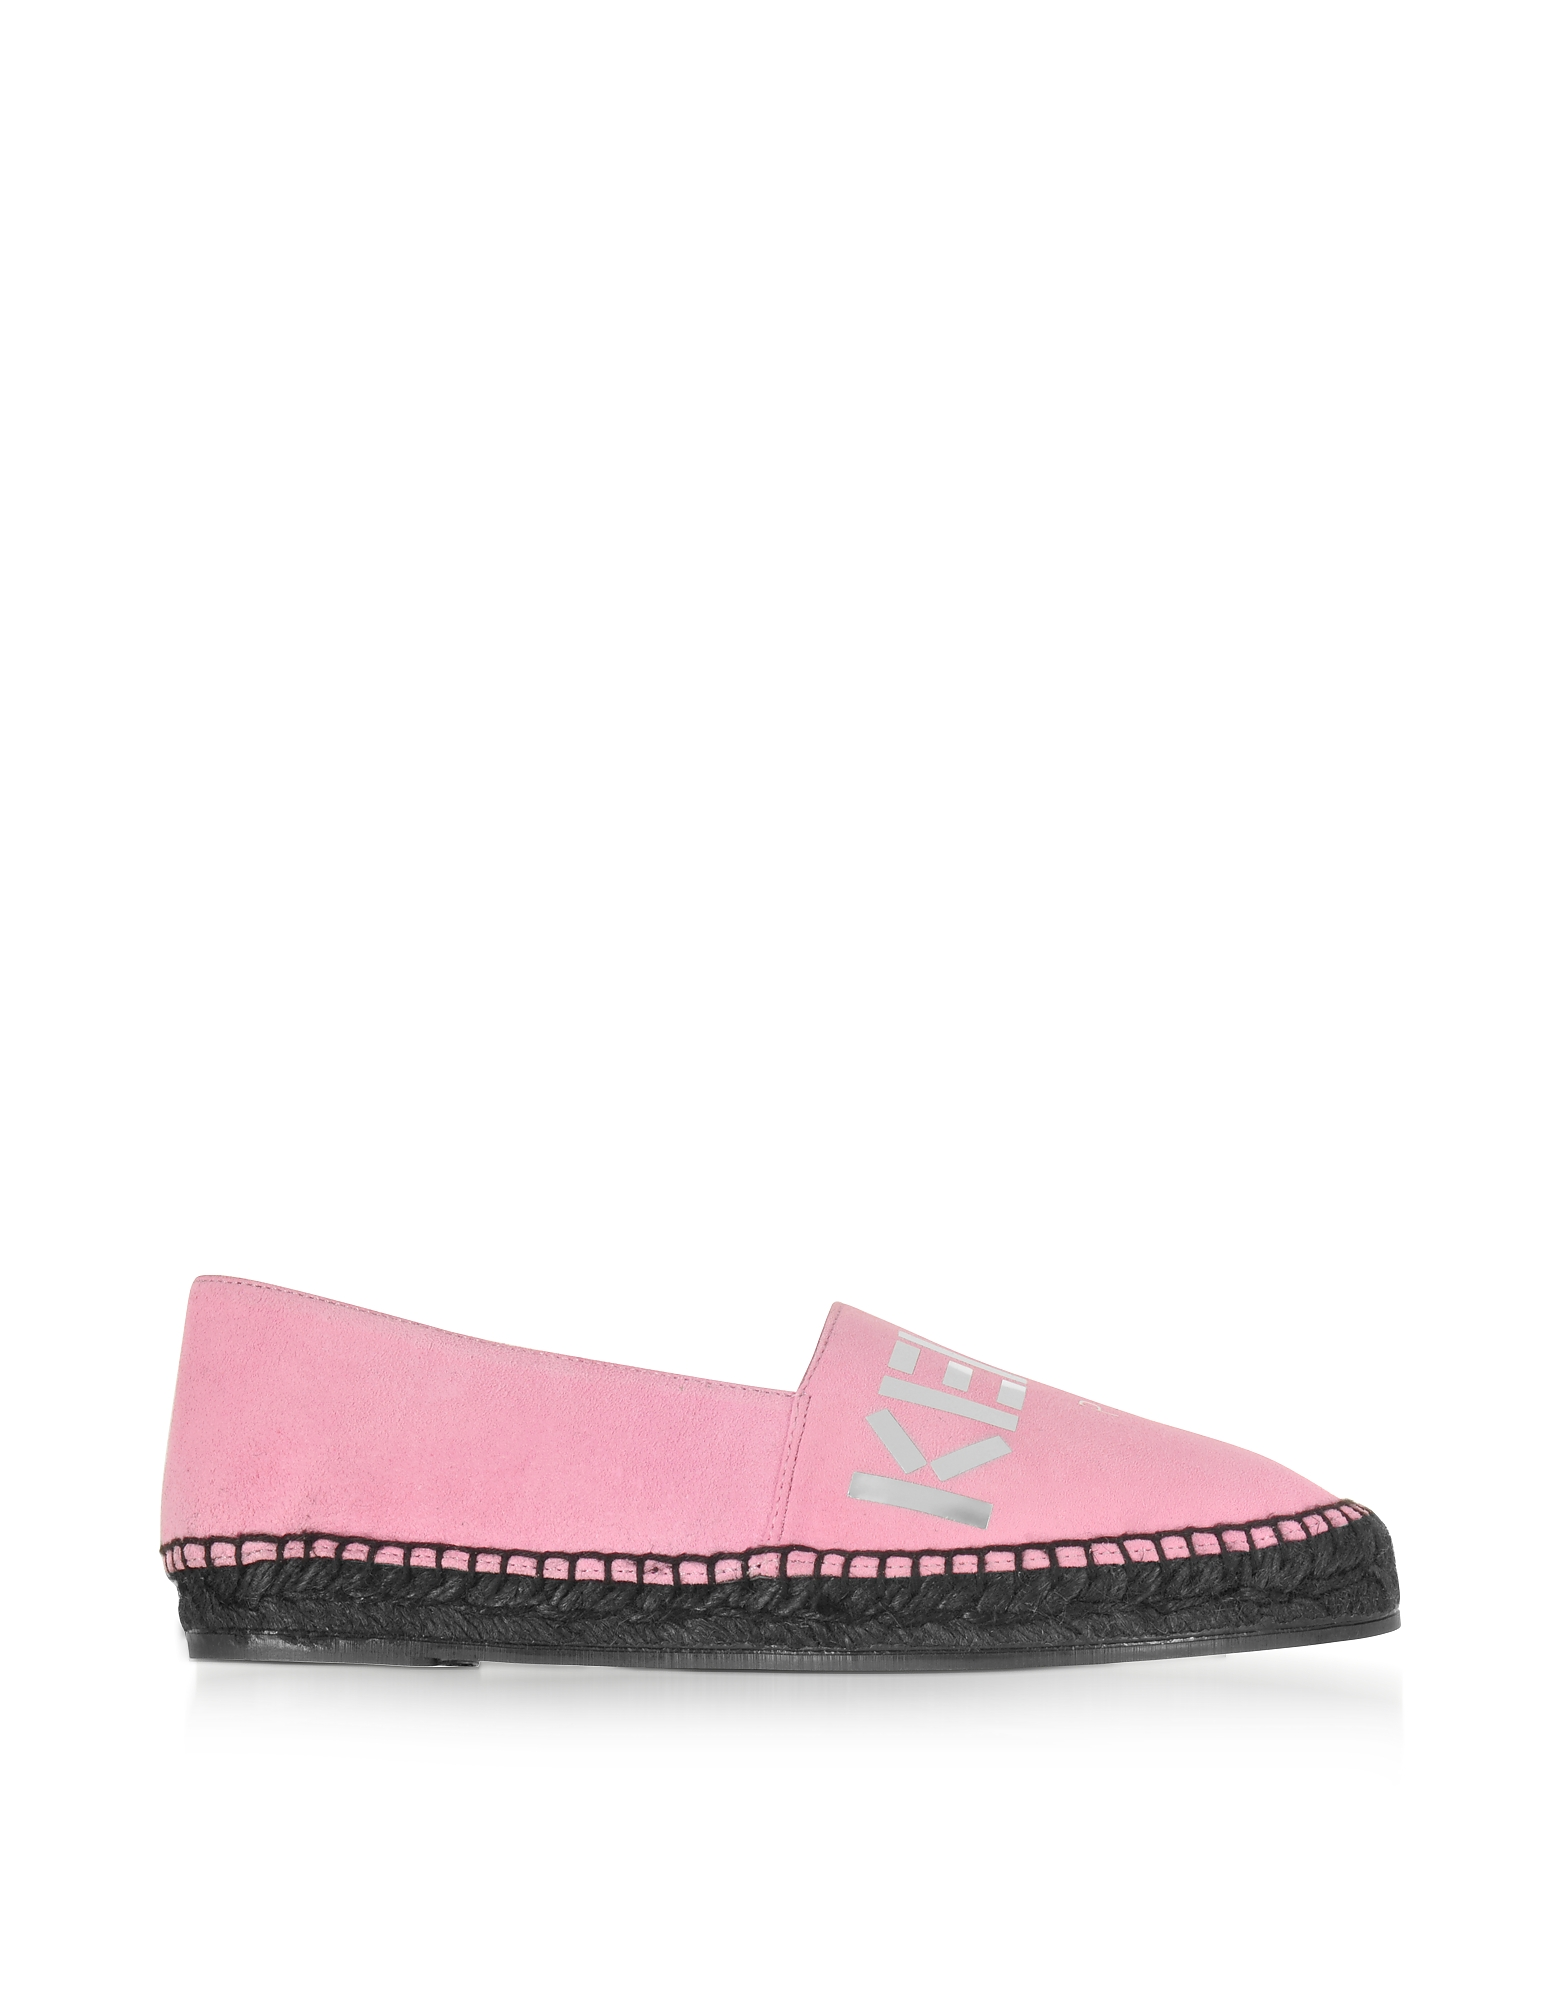 Kenzo Shoes, Light Rose Suede Kenzo Mirrored Espadrilles